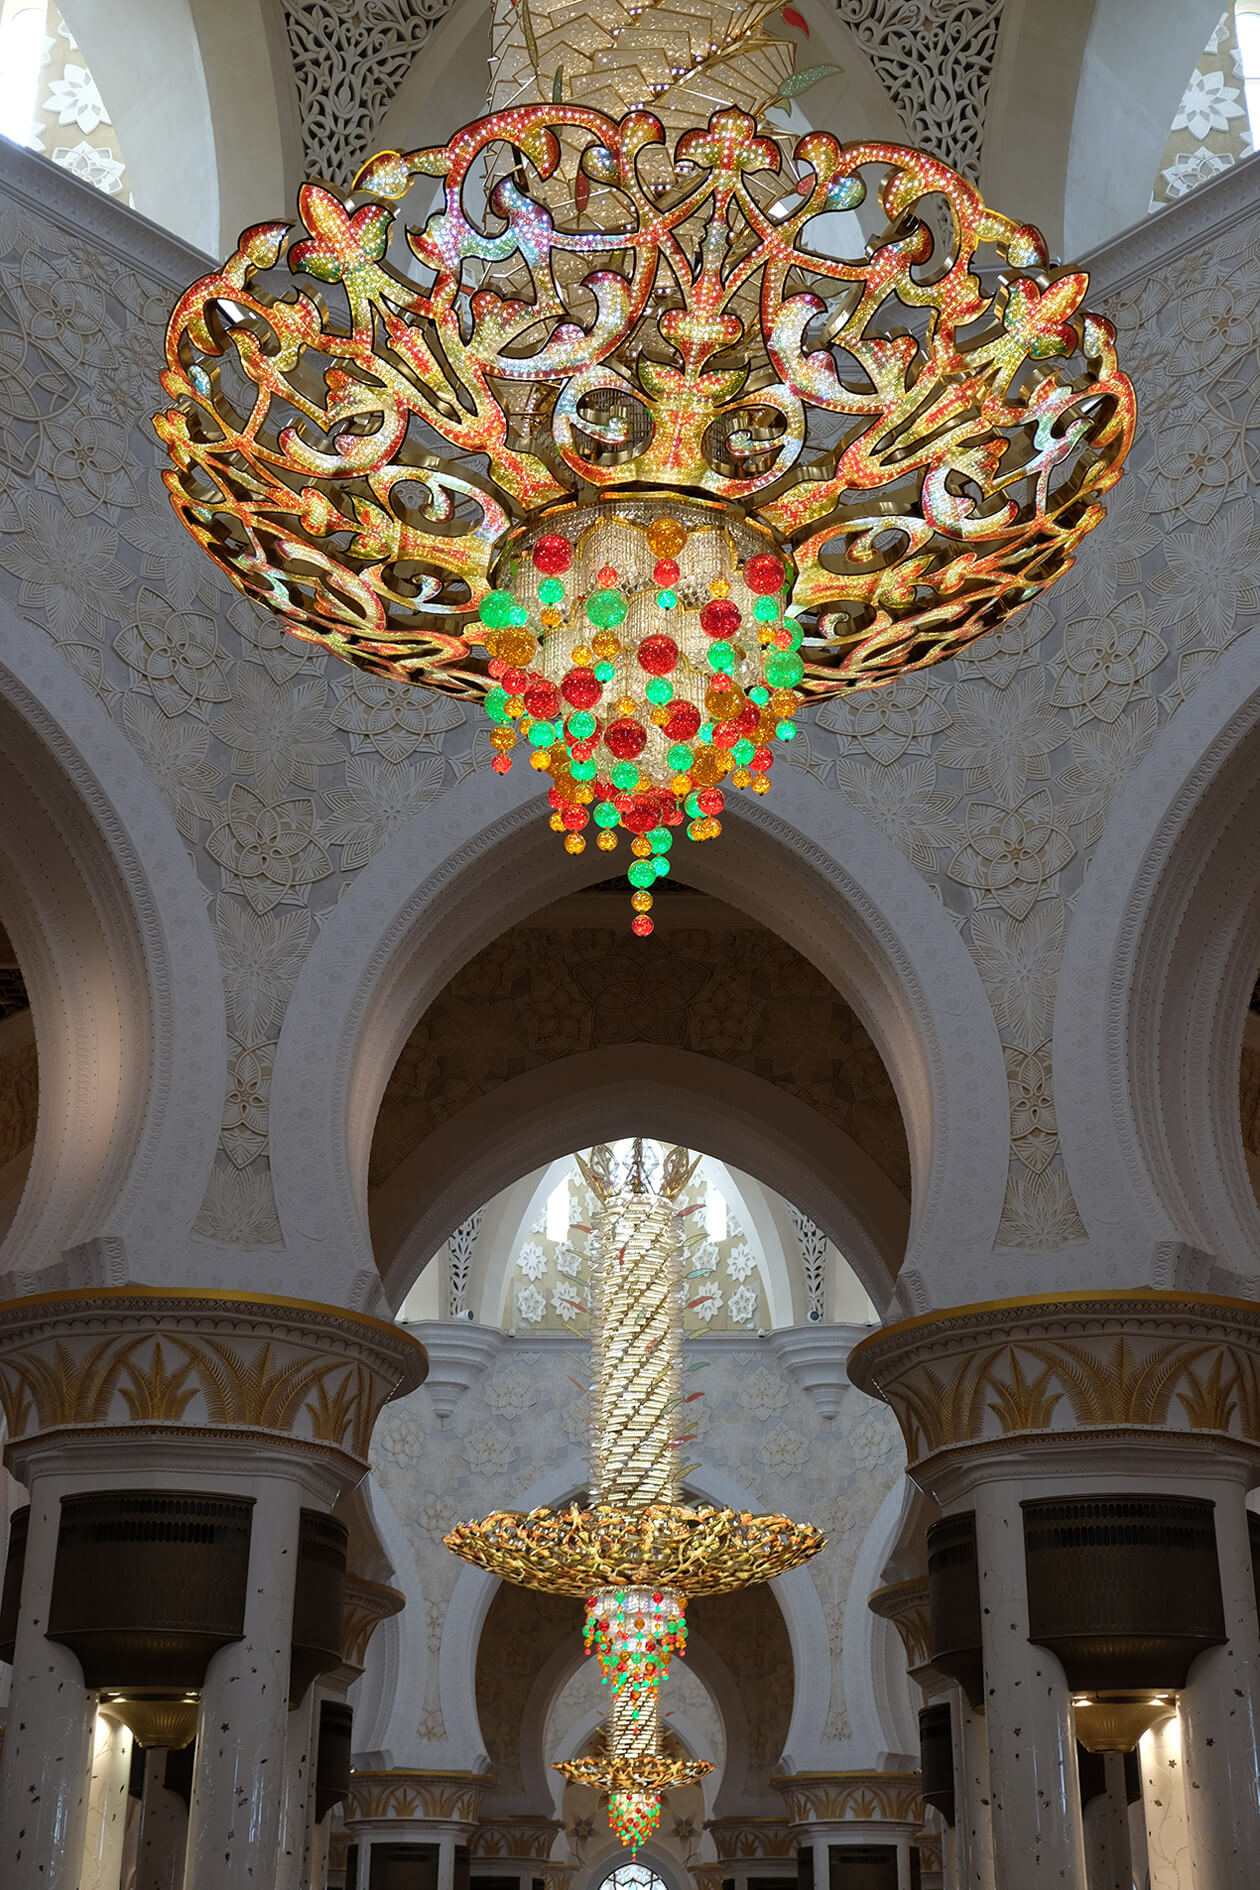 The chandeliers are some of the largest in a mosque. The biggest one weighs 12 tons.